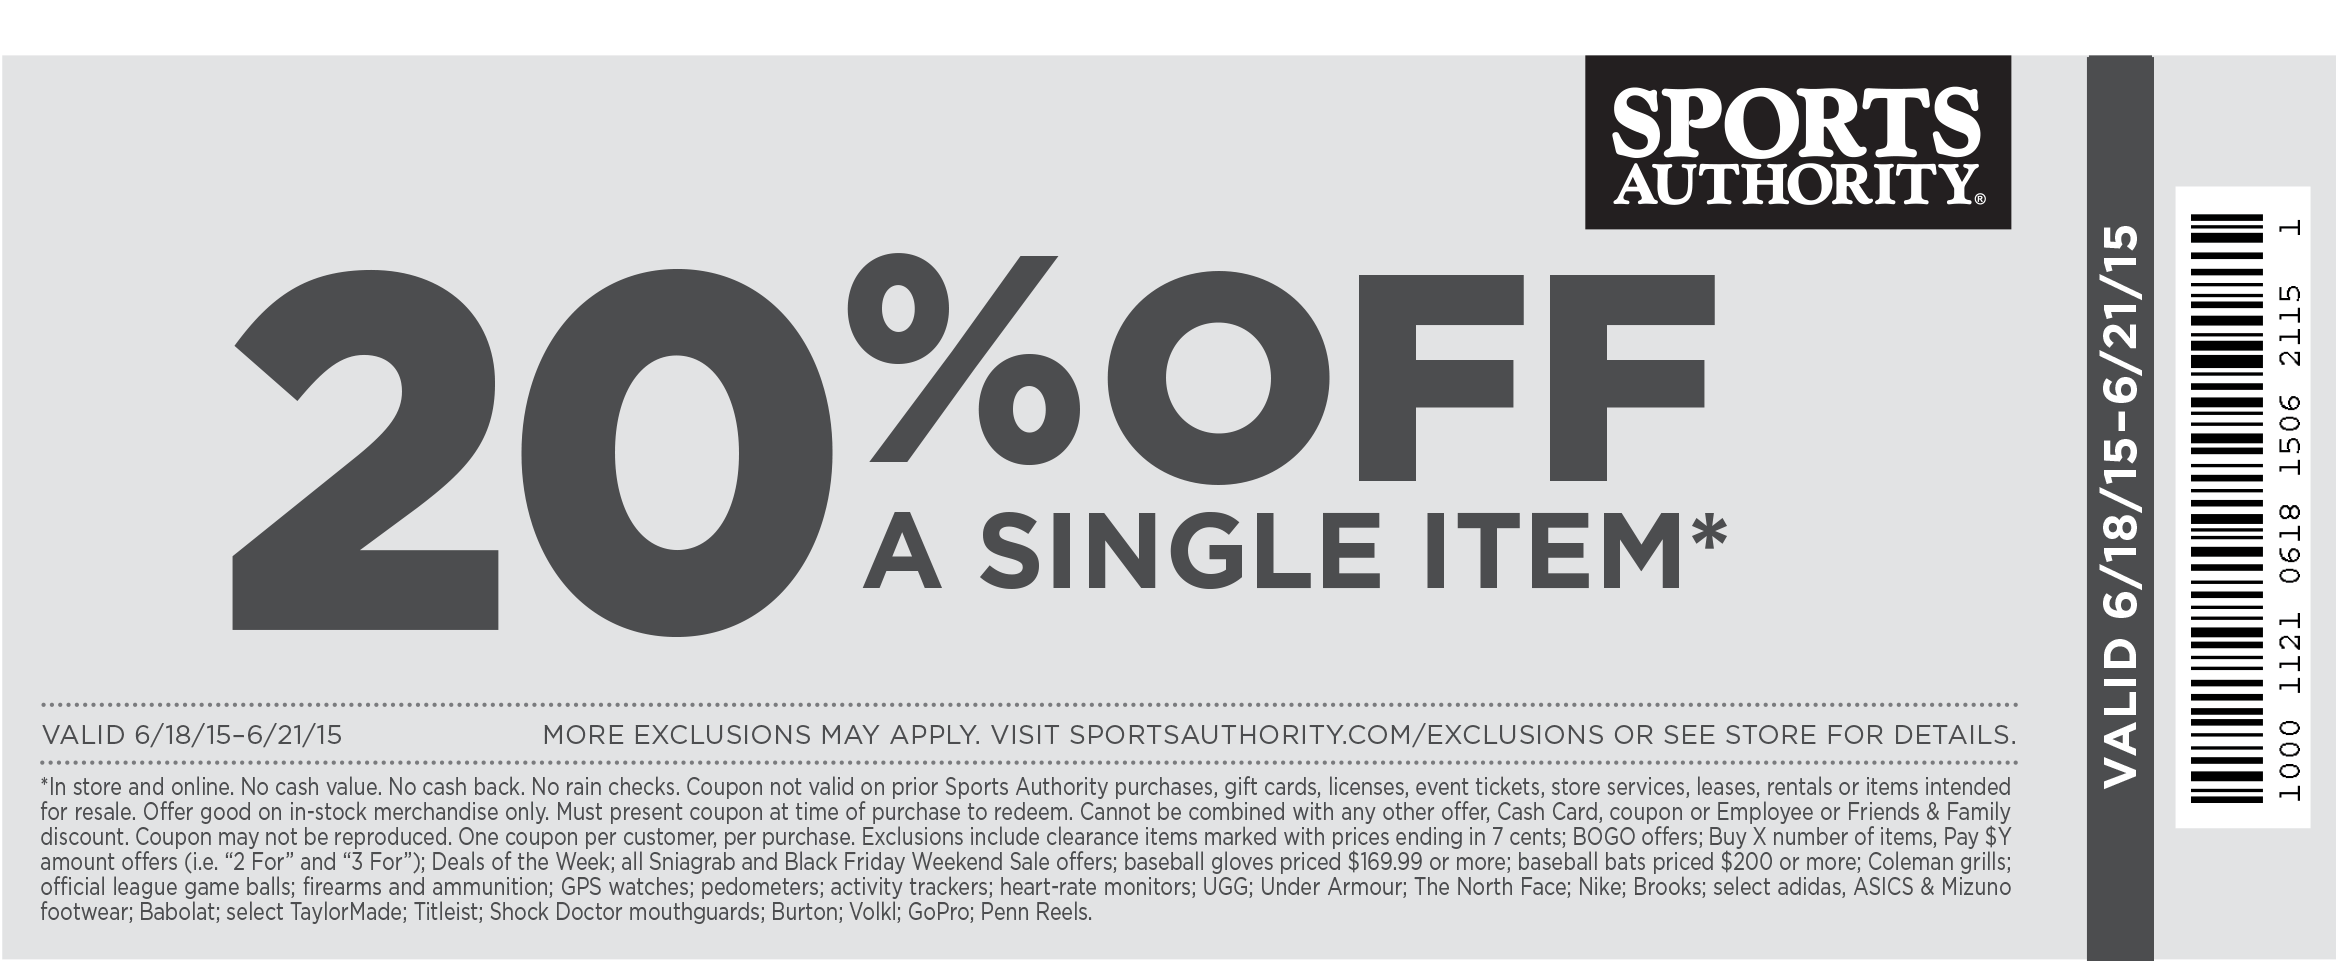 Sports Authority Coupon April 2017 20% off a single item at Sports Authority, ditto online